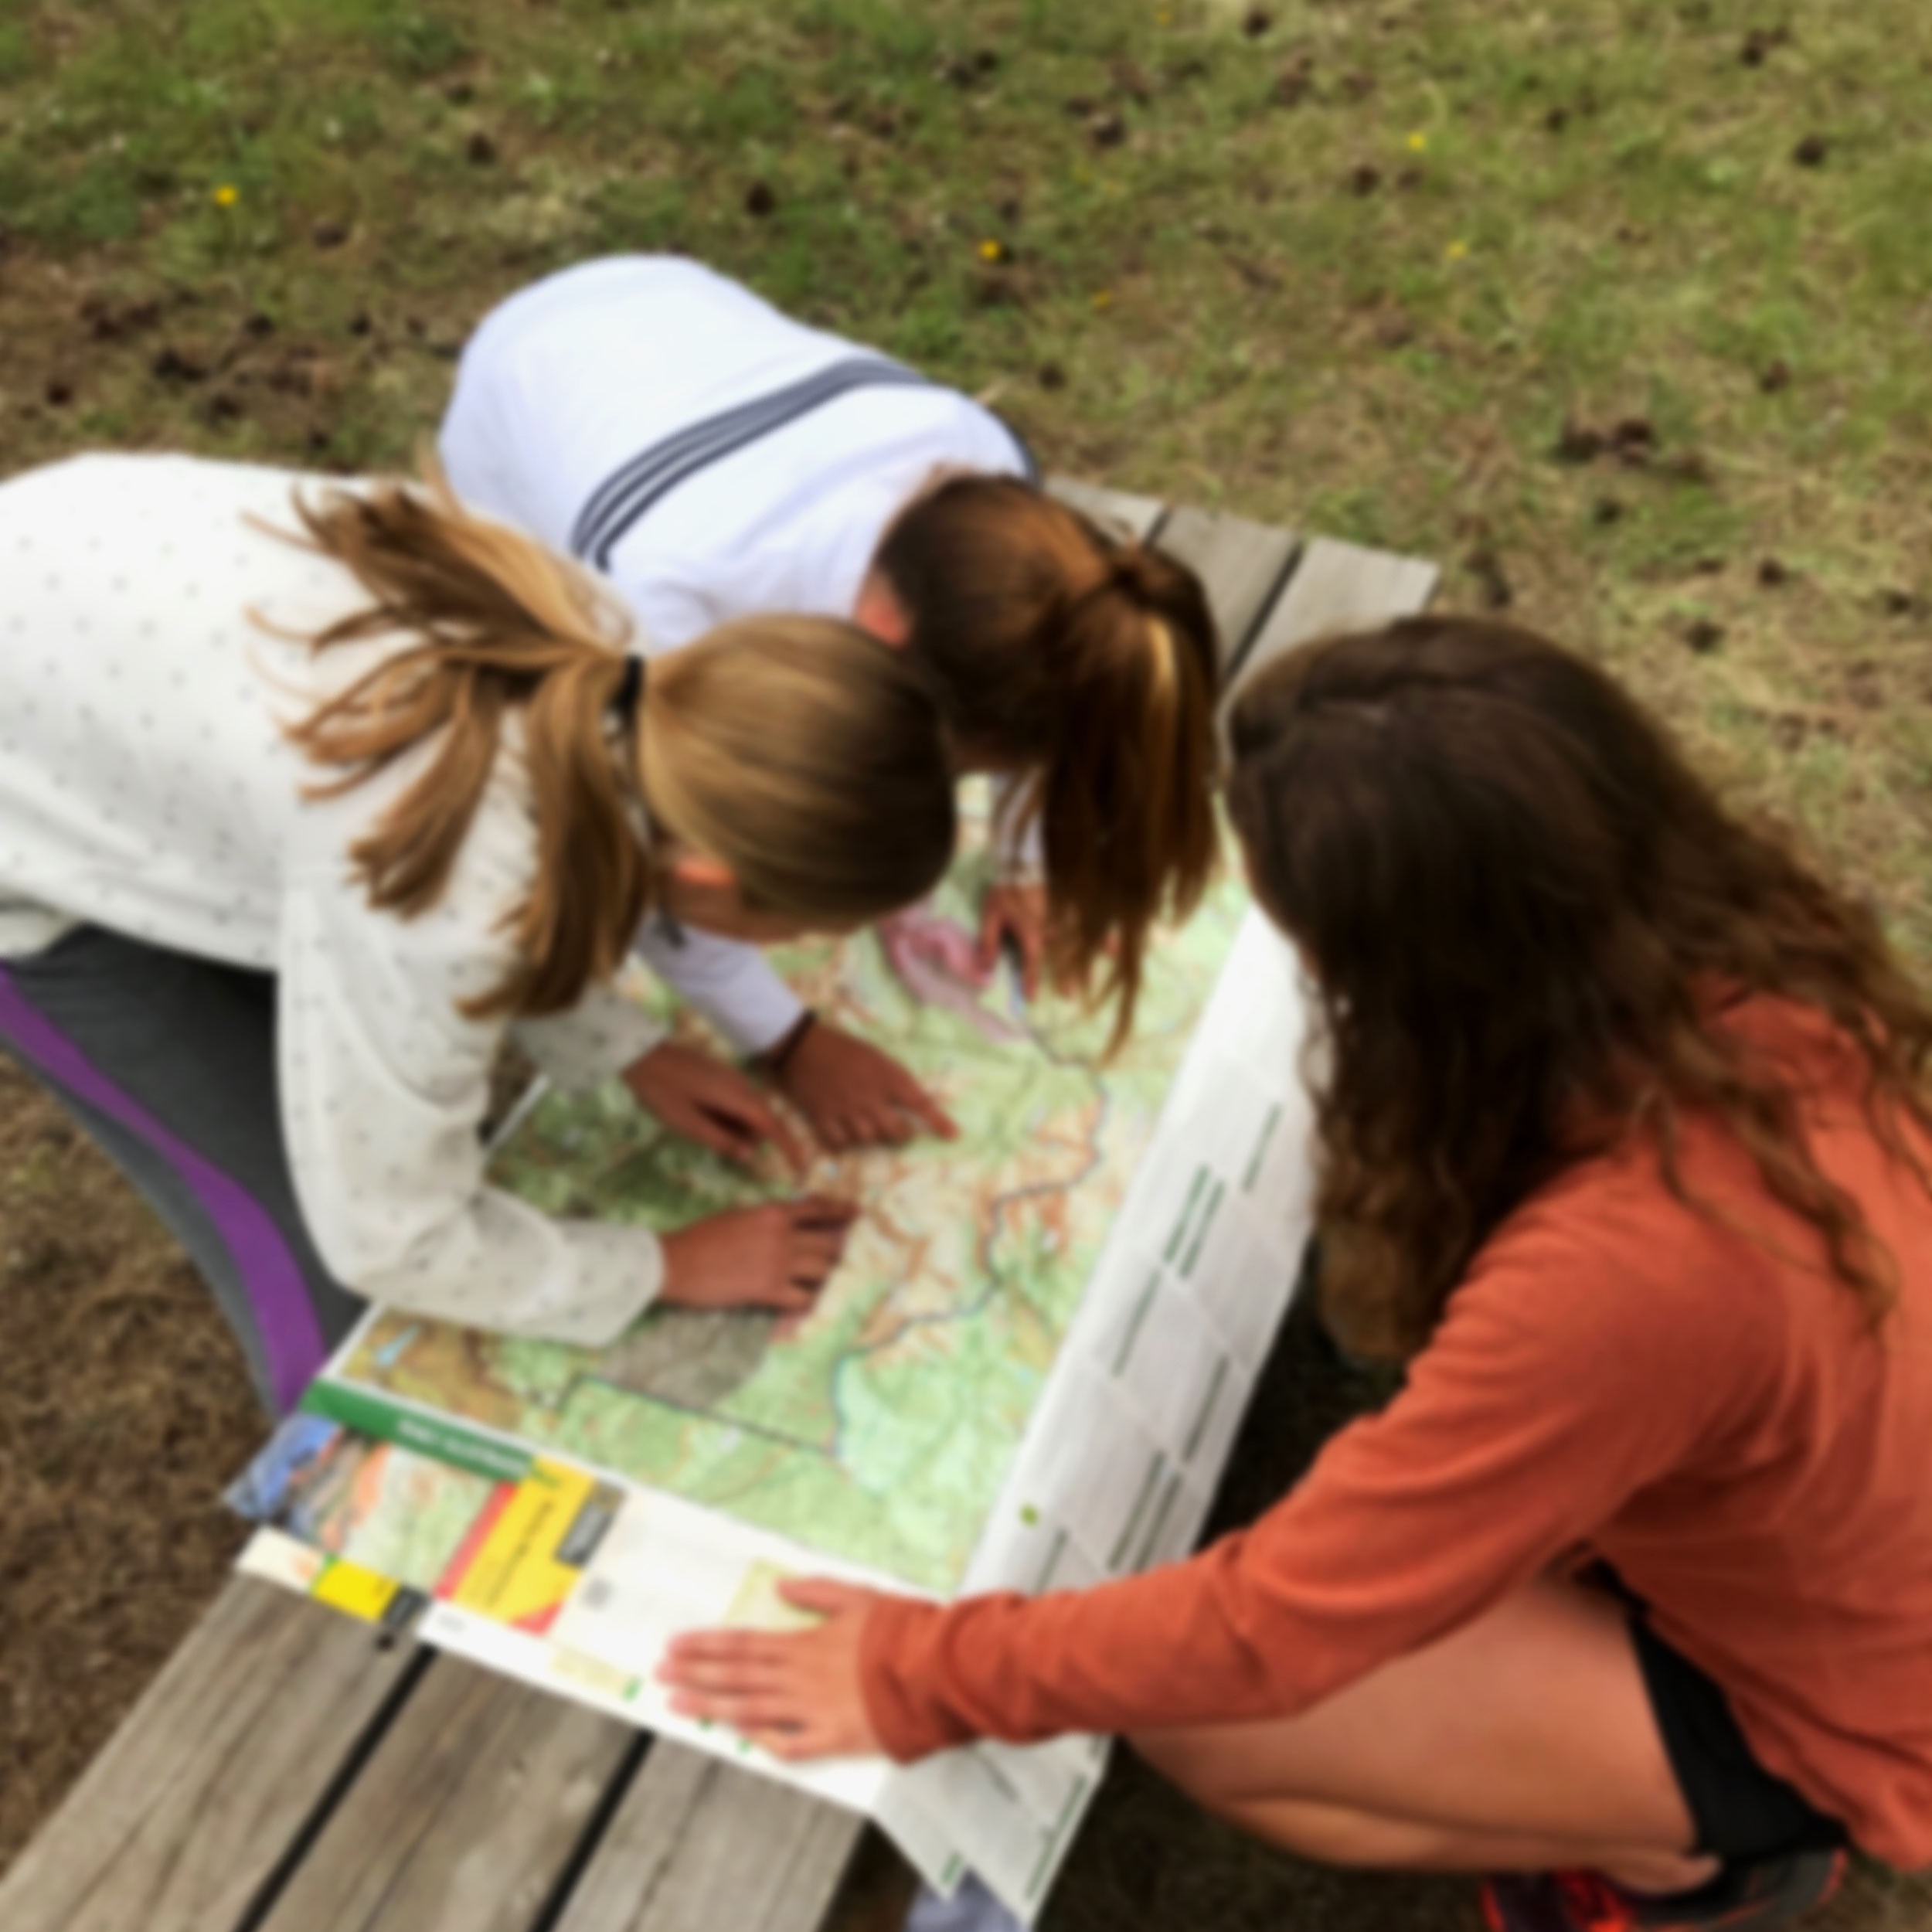 Orienteering - $60Students, accompanied by a guide, will be dropped off in the wilderness with the task of finding the checkpoints that will lead them to the goal. Armed with their wits, maps, and compasses, students will use math skills, team-work, and problem solving as they advance to the end goal.